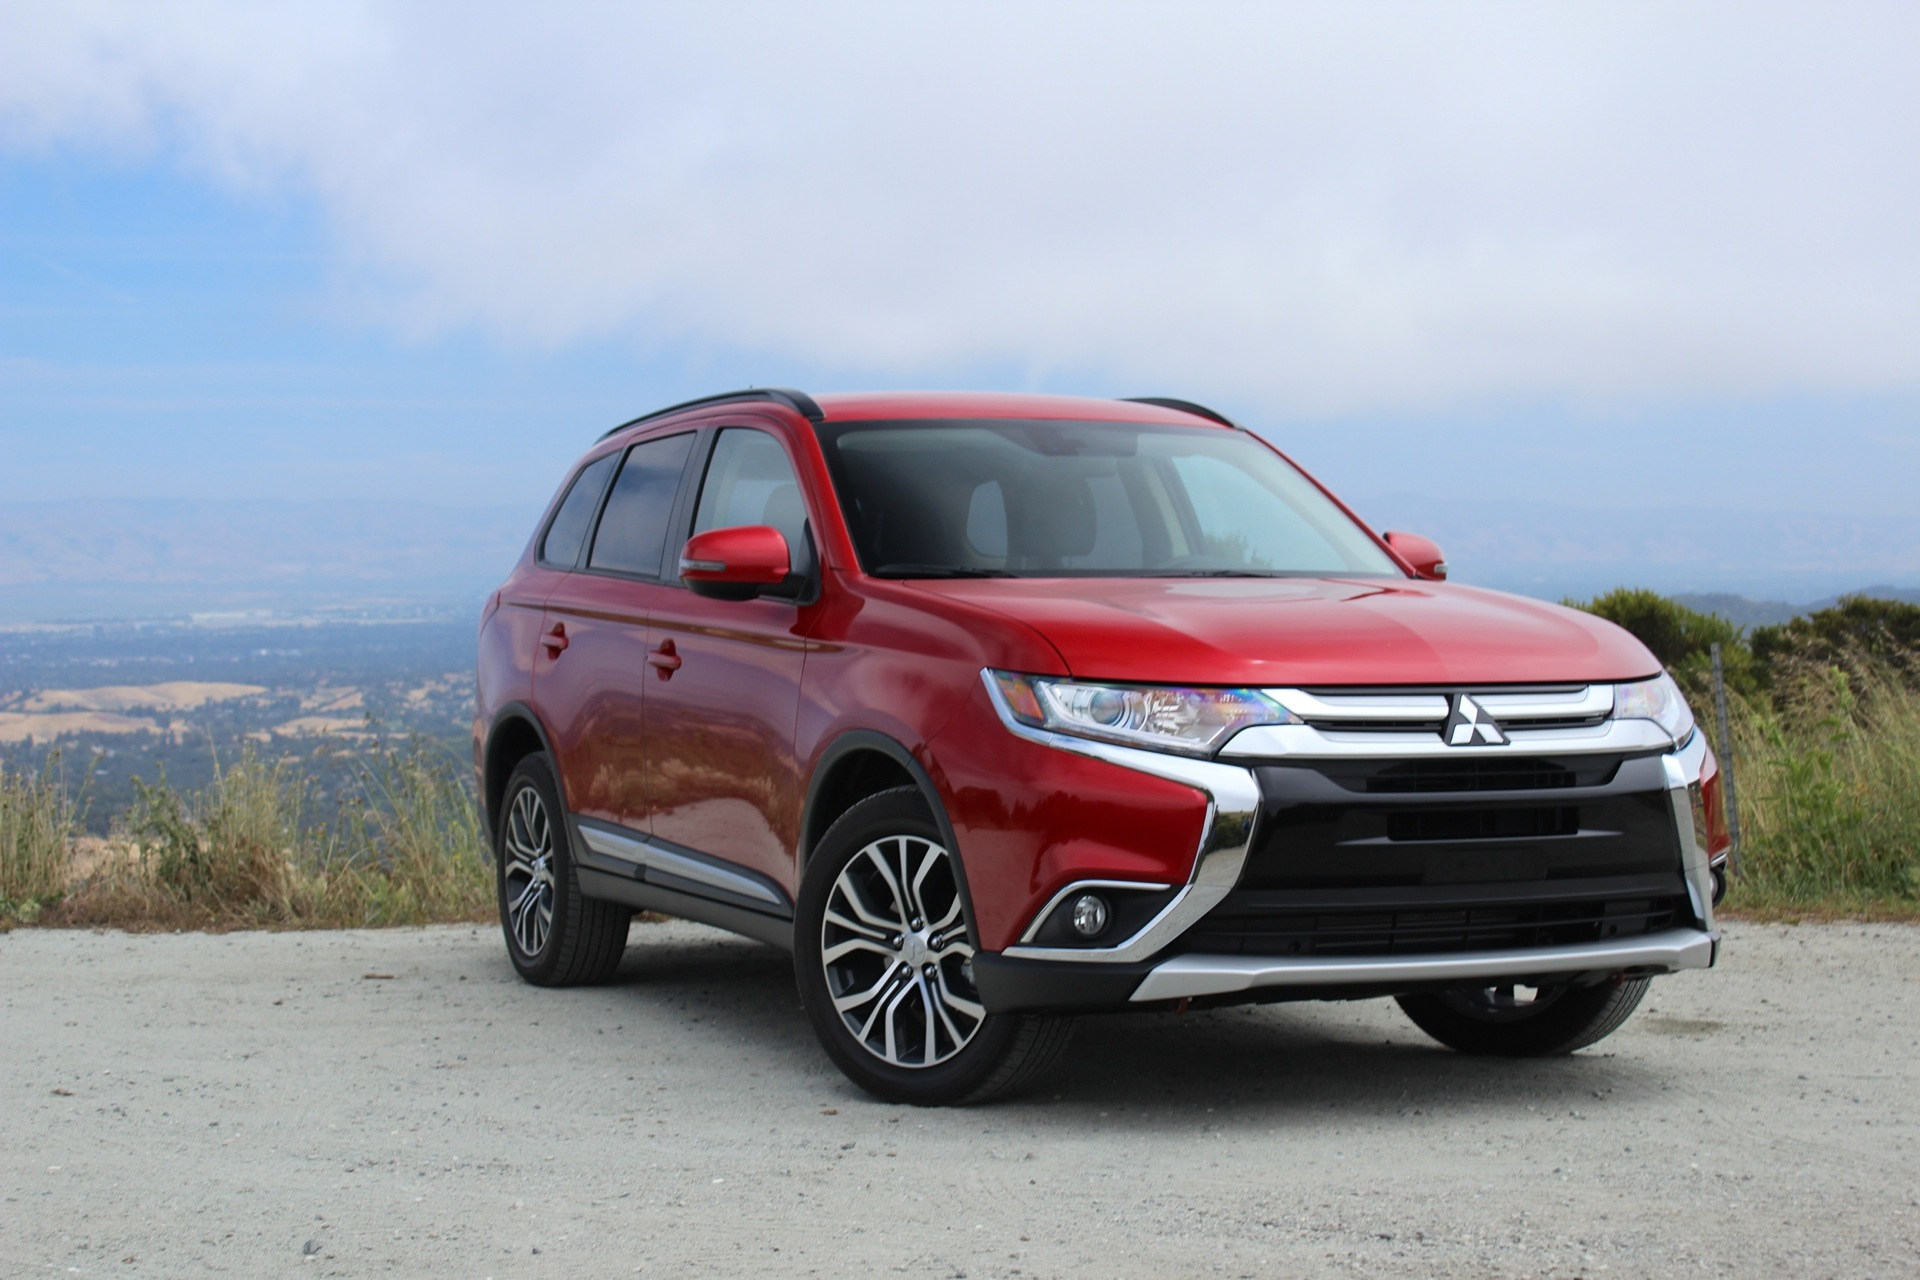 2016 Mitsubishi Outlander Review, Ratings, Specs, Prices ...